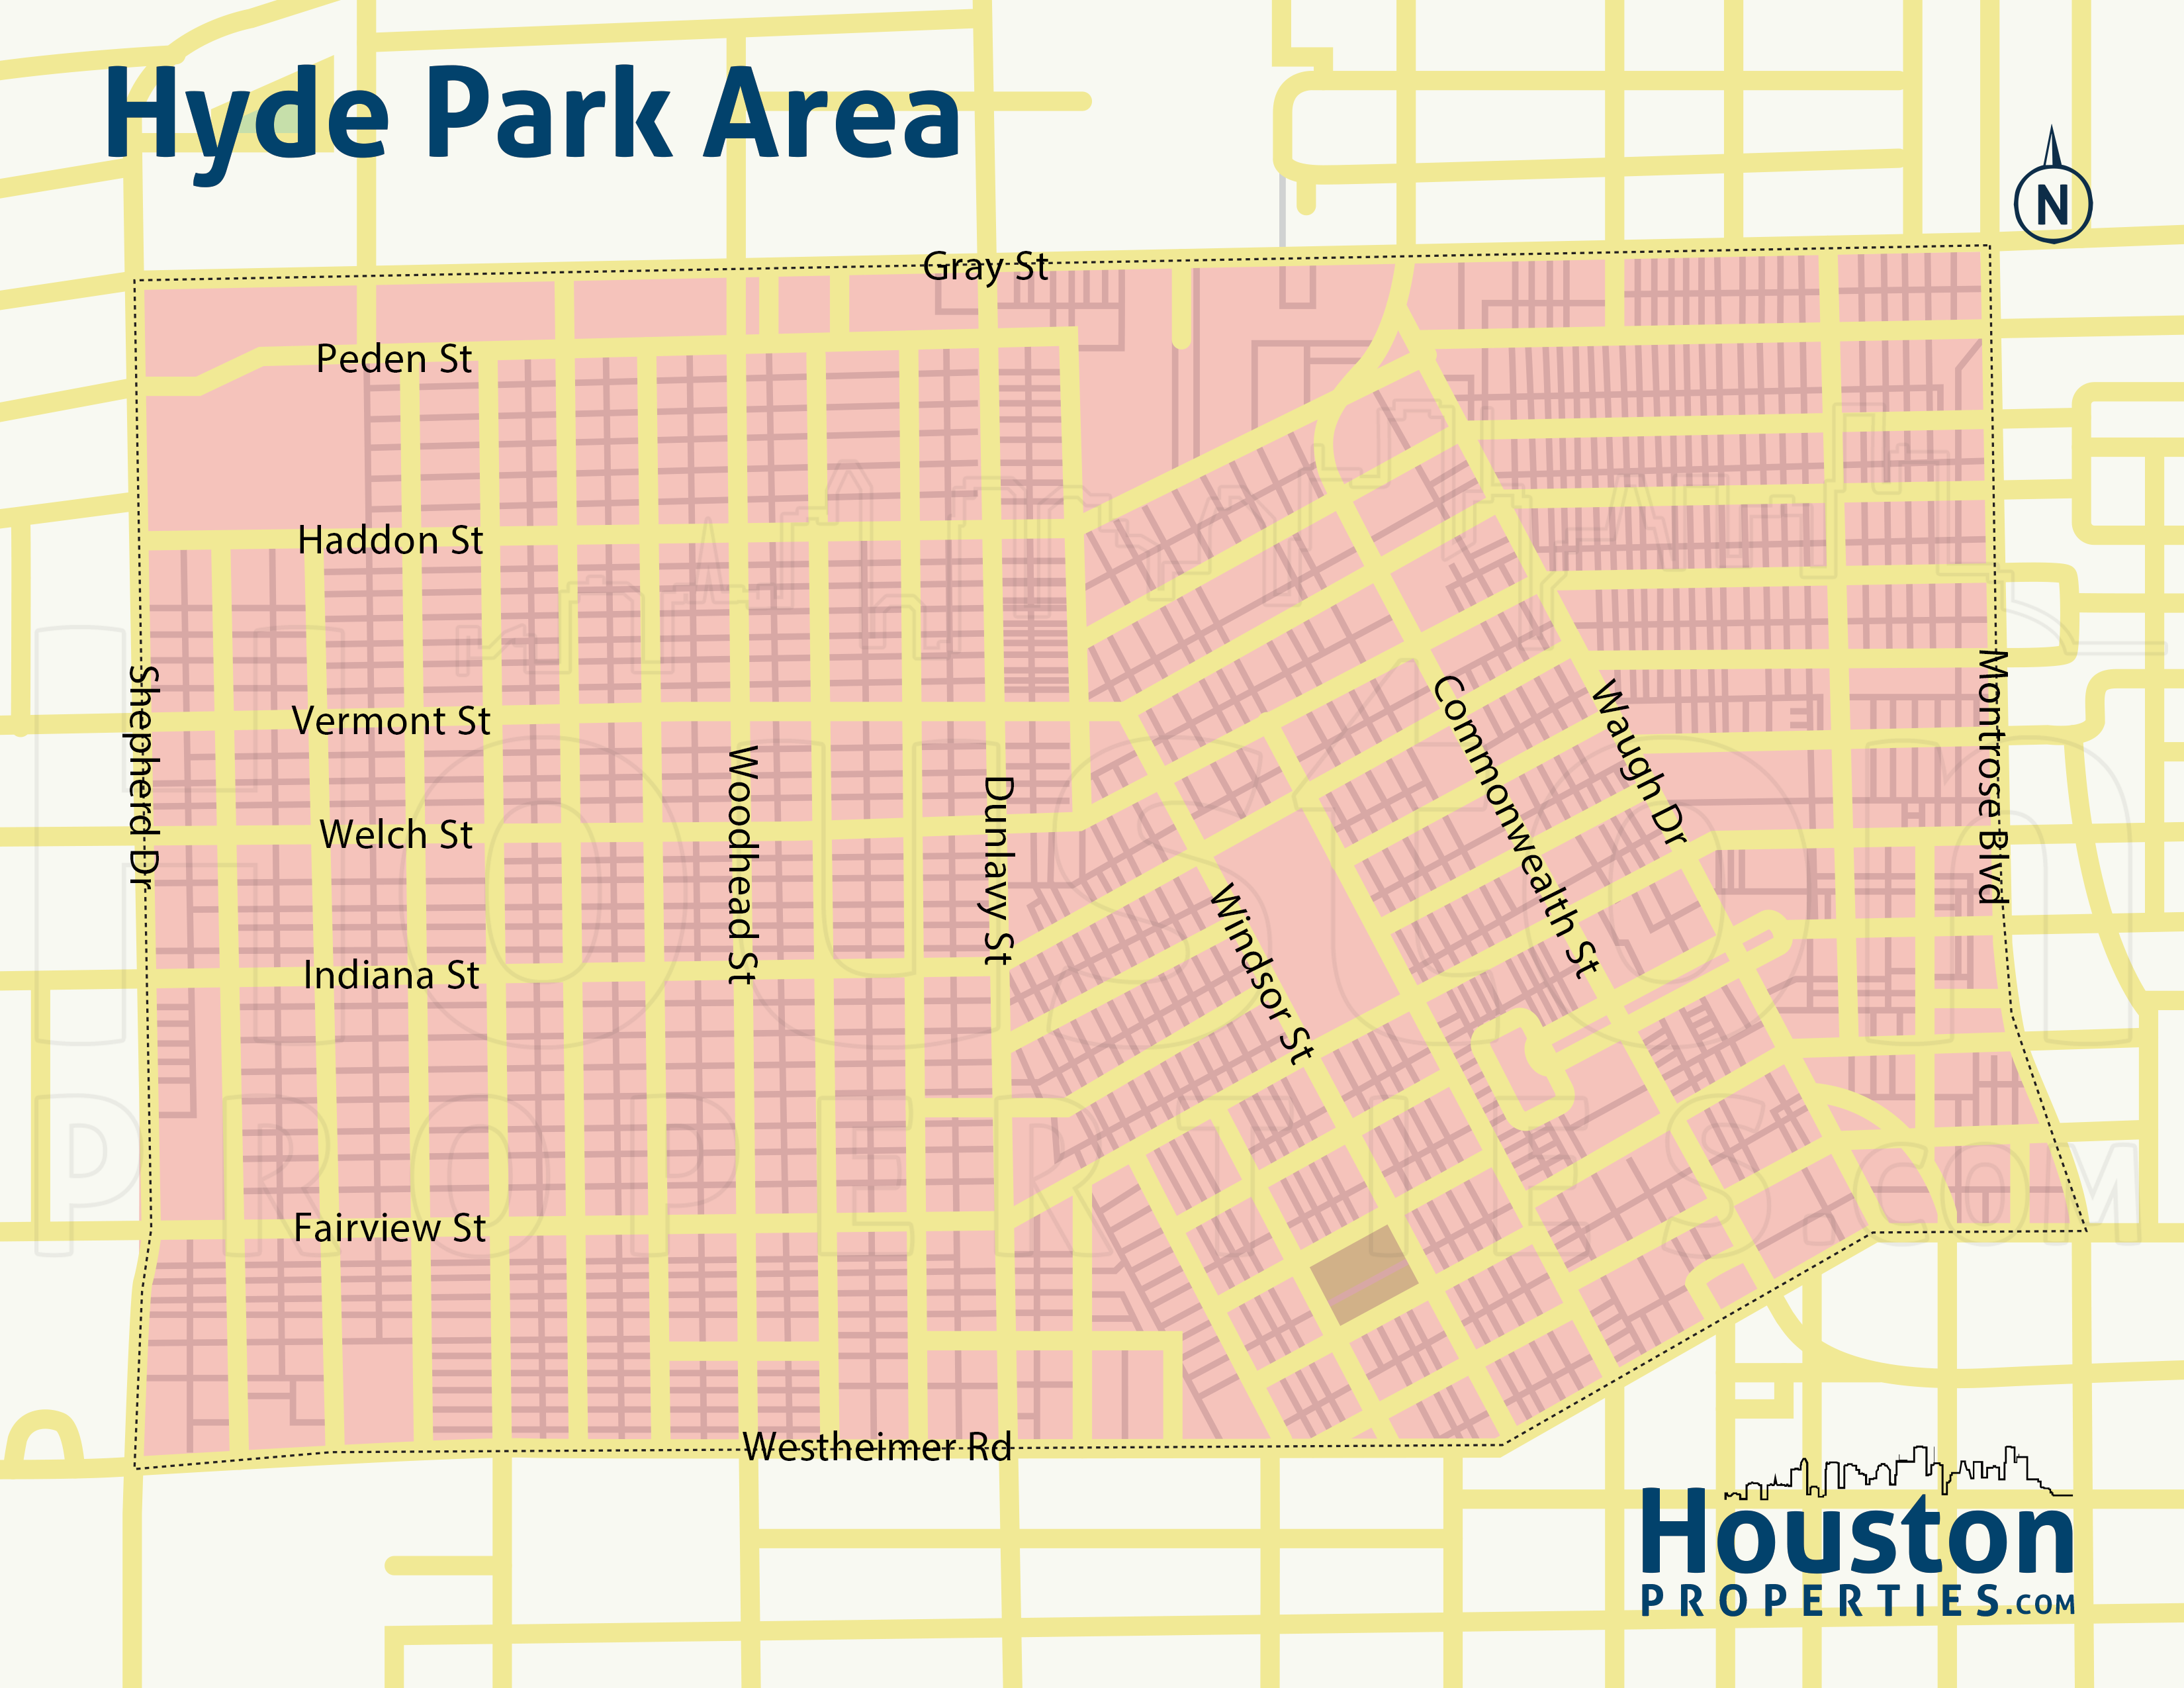 Map of Hyde Park